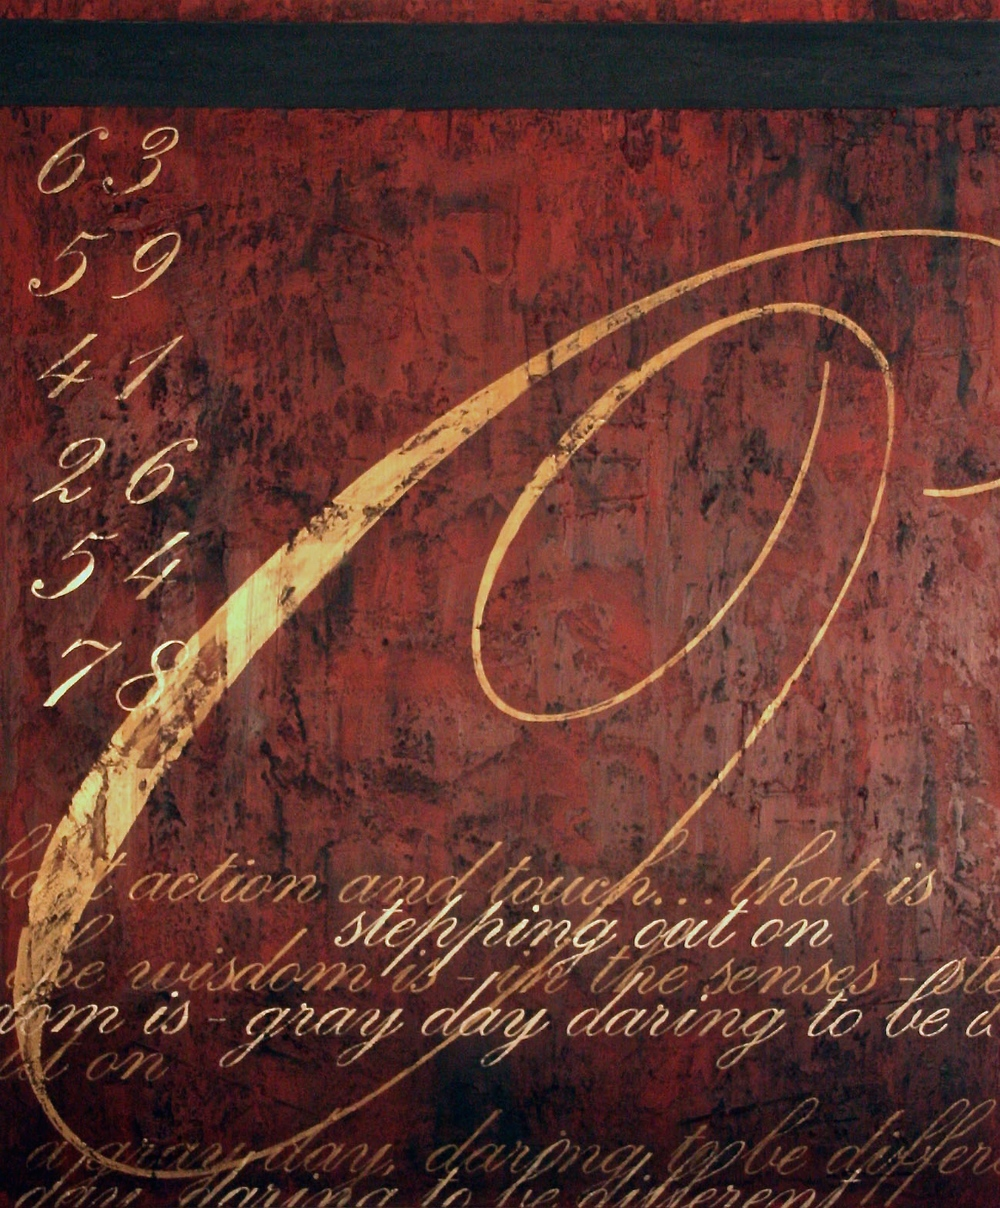 daring to be...  72 x 60 x 1.5 inches  mixed media & gold dust on canvas  $6,800 - SOLD